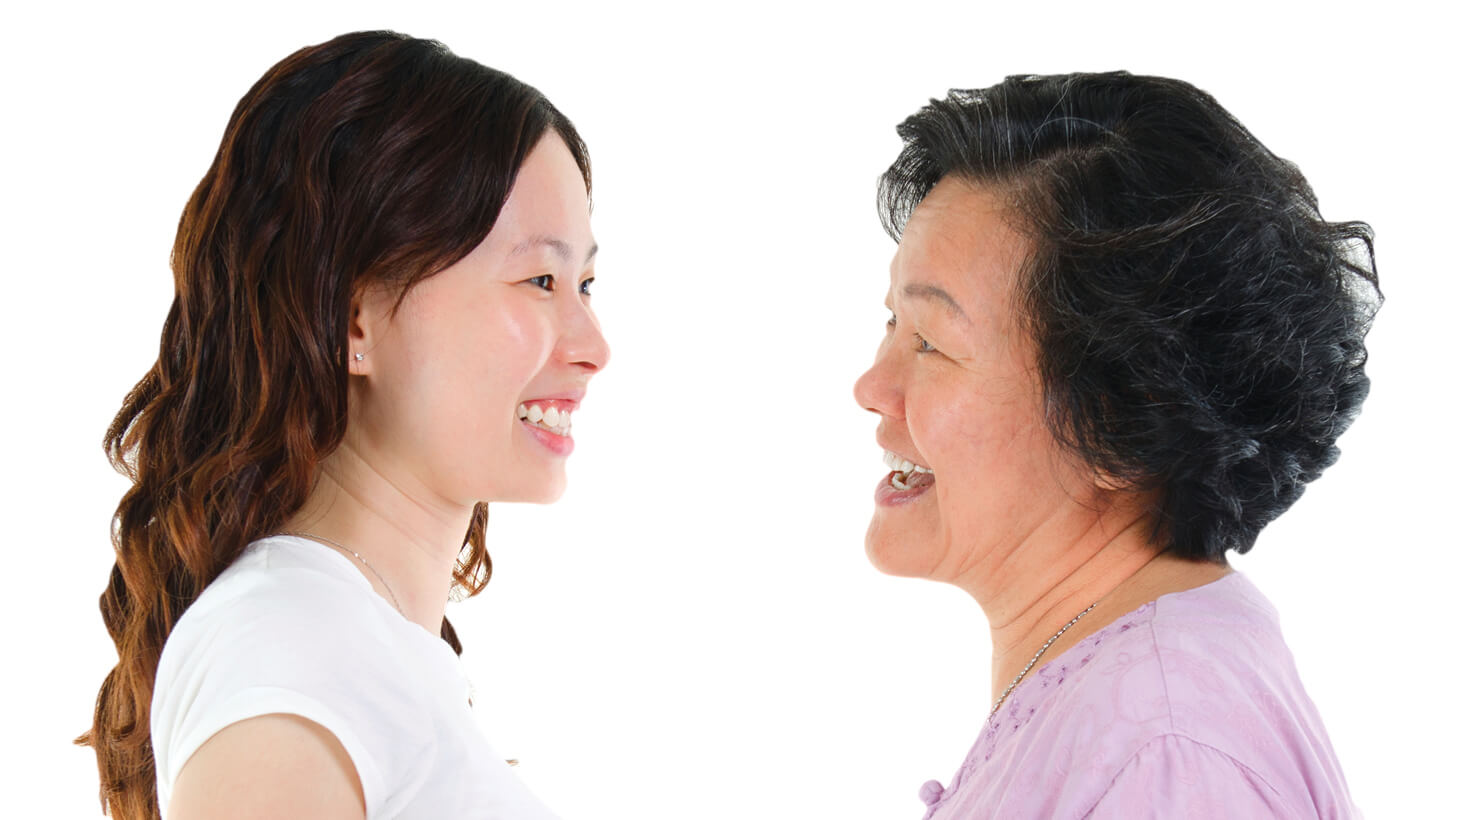 Senior Asian mother and her adult daughter facing each other in profile and smiling warmly